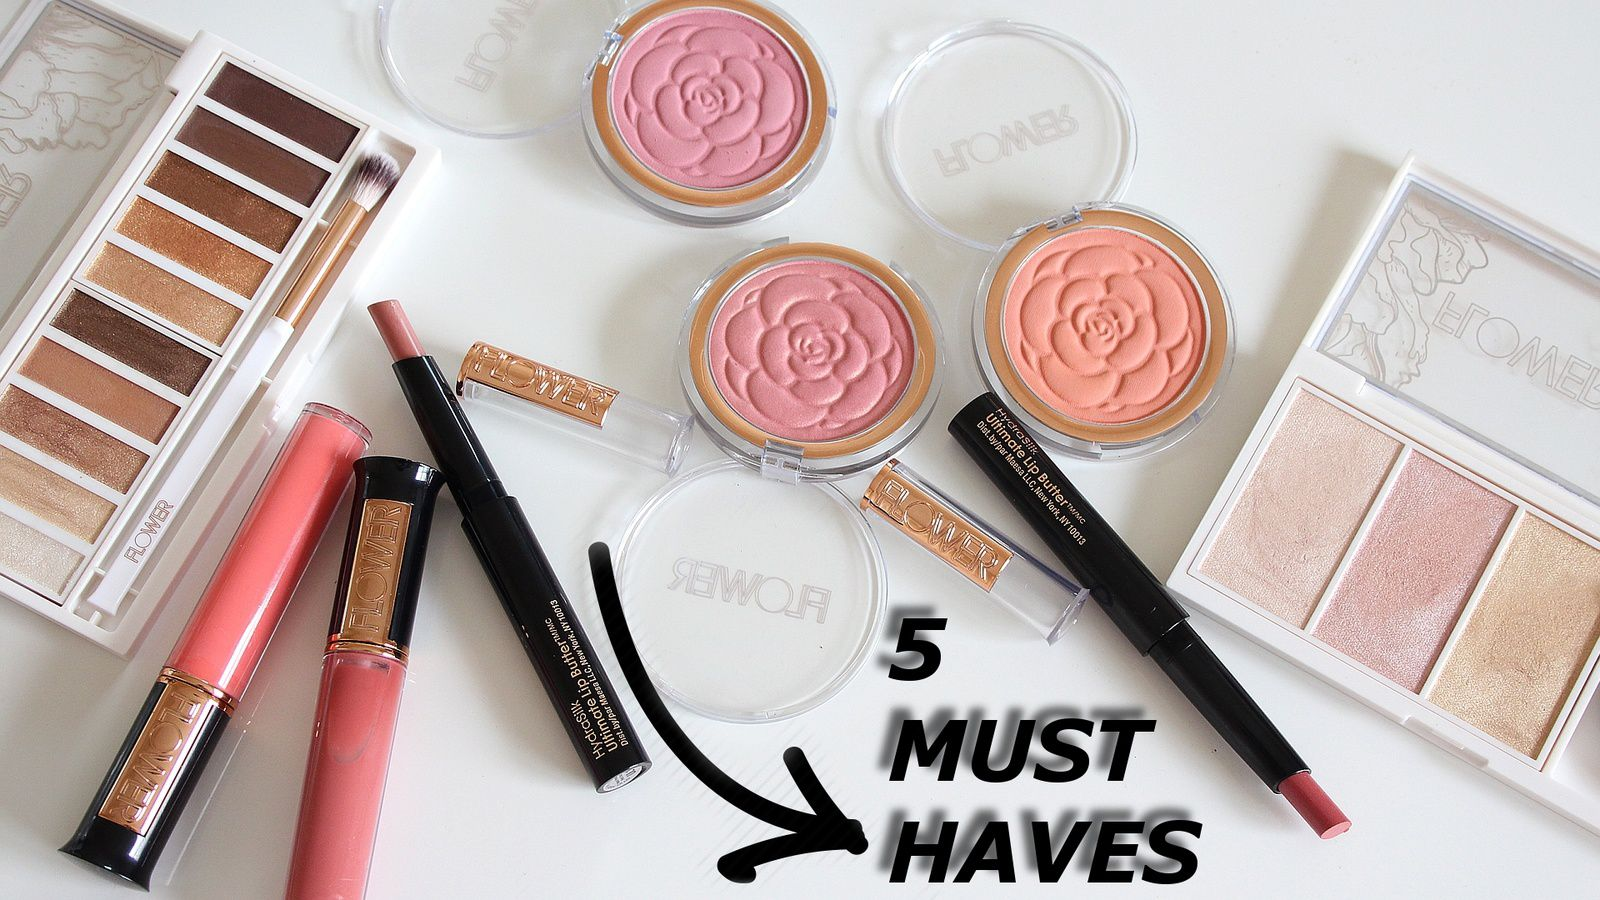 BEST OF Flower Beauty Drugstore Makeup! My 5 Must-Haves!!